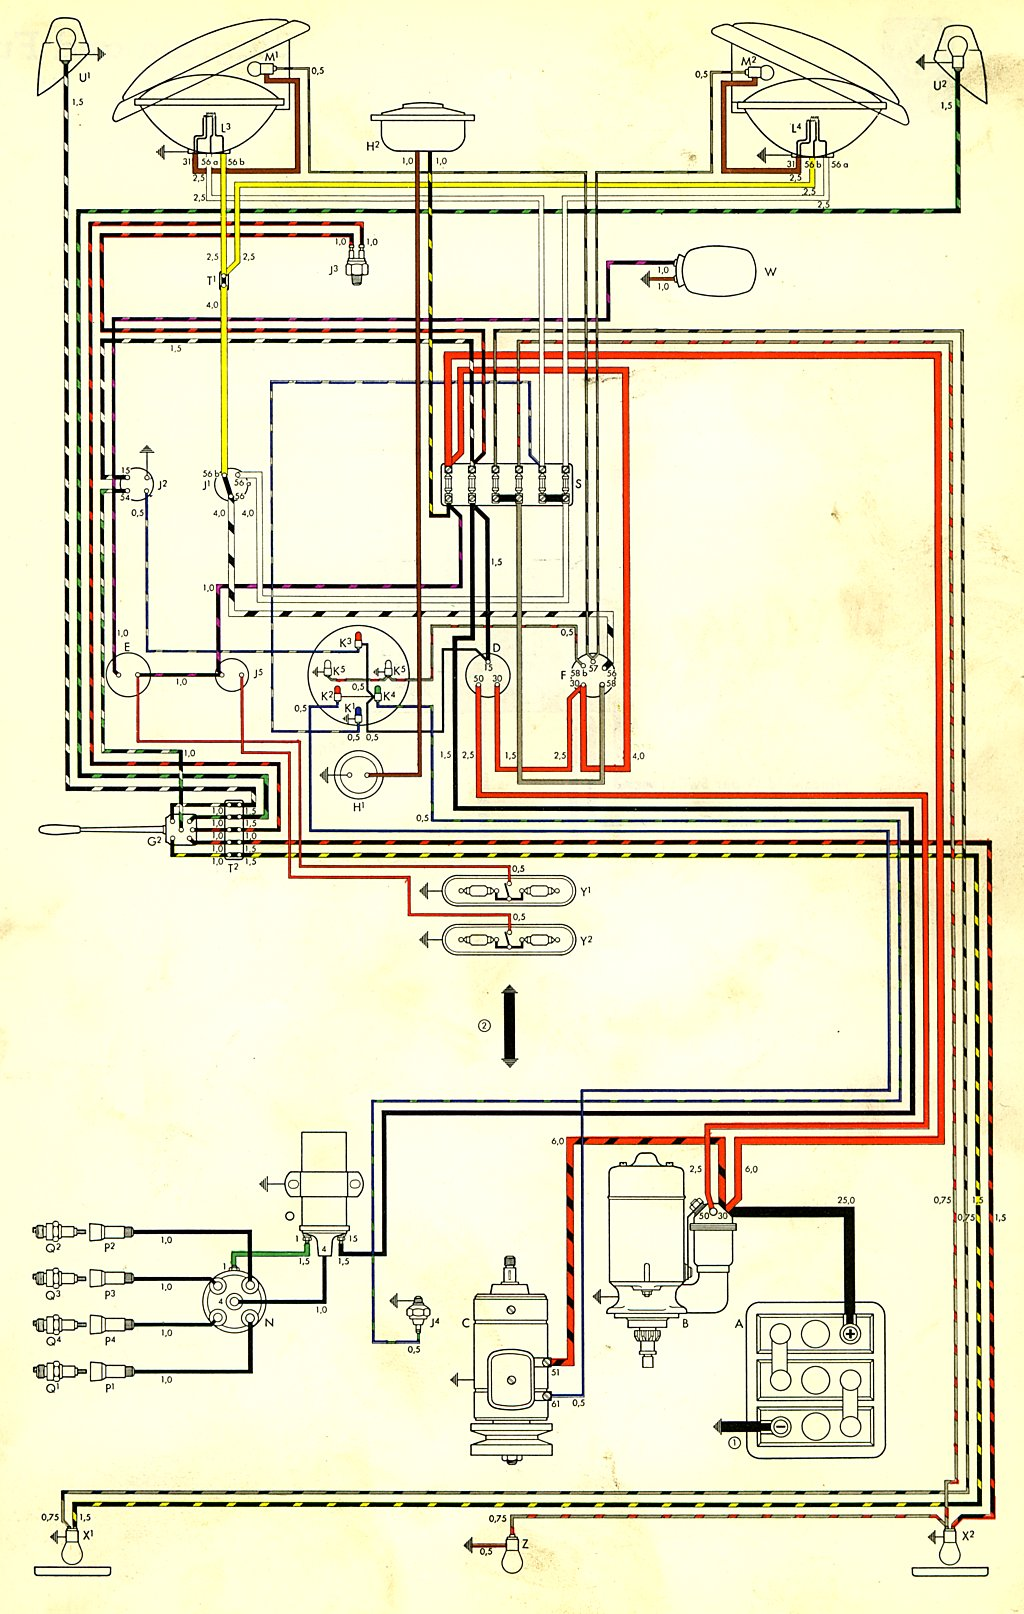 TheSamba.com :: Type 2 Wiring Diagrams | Bus Electrical Wiring Diagrams |  | The Samba